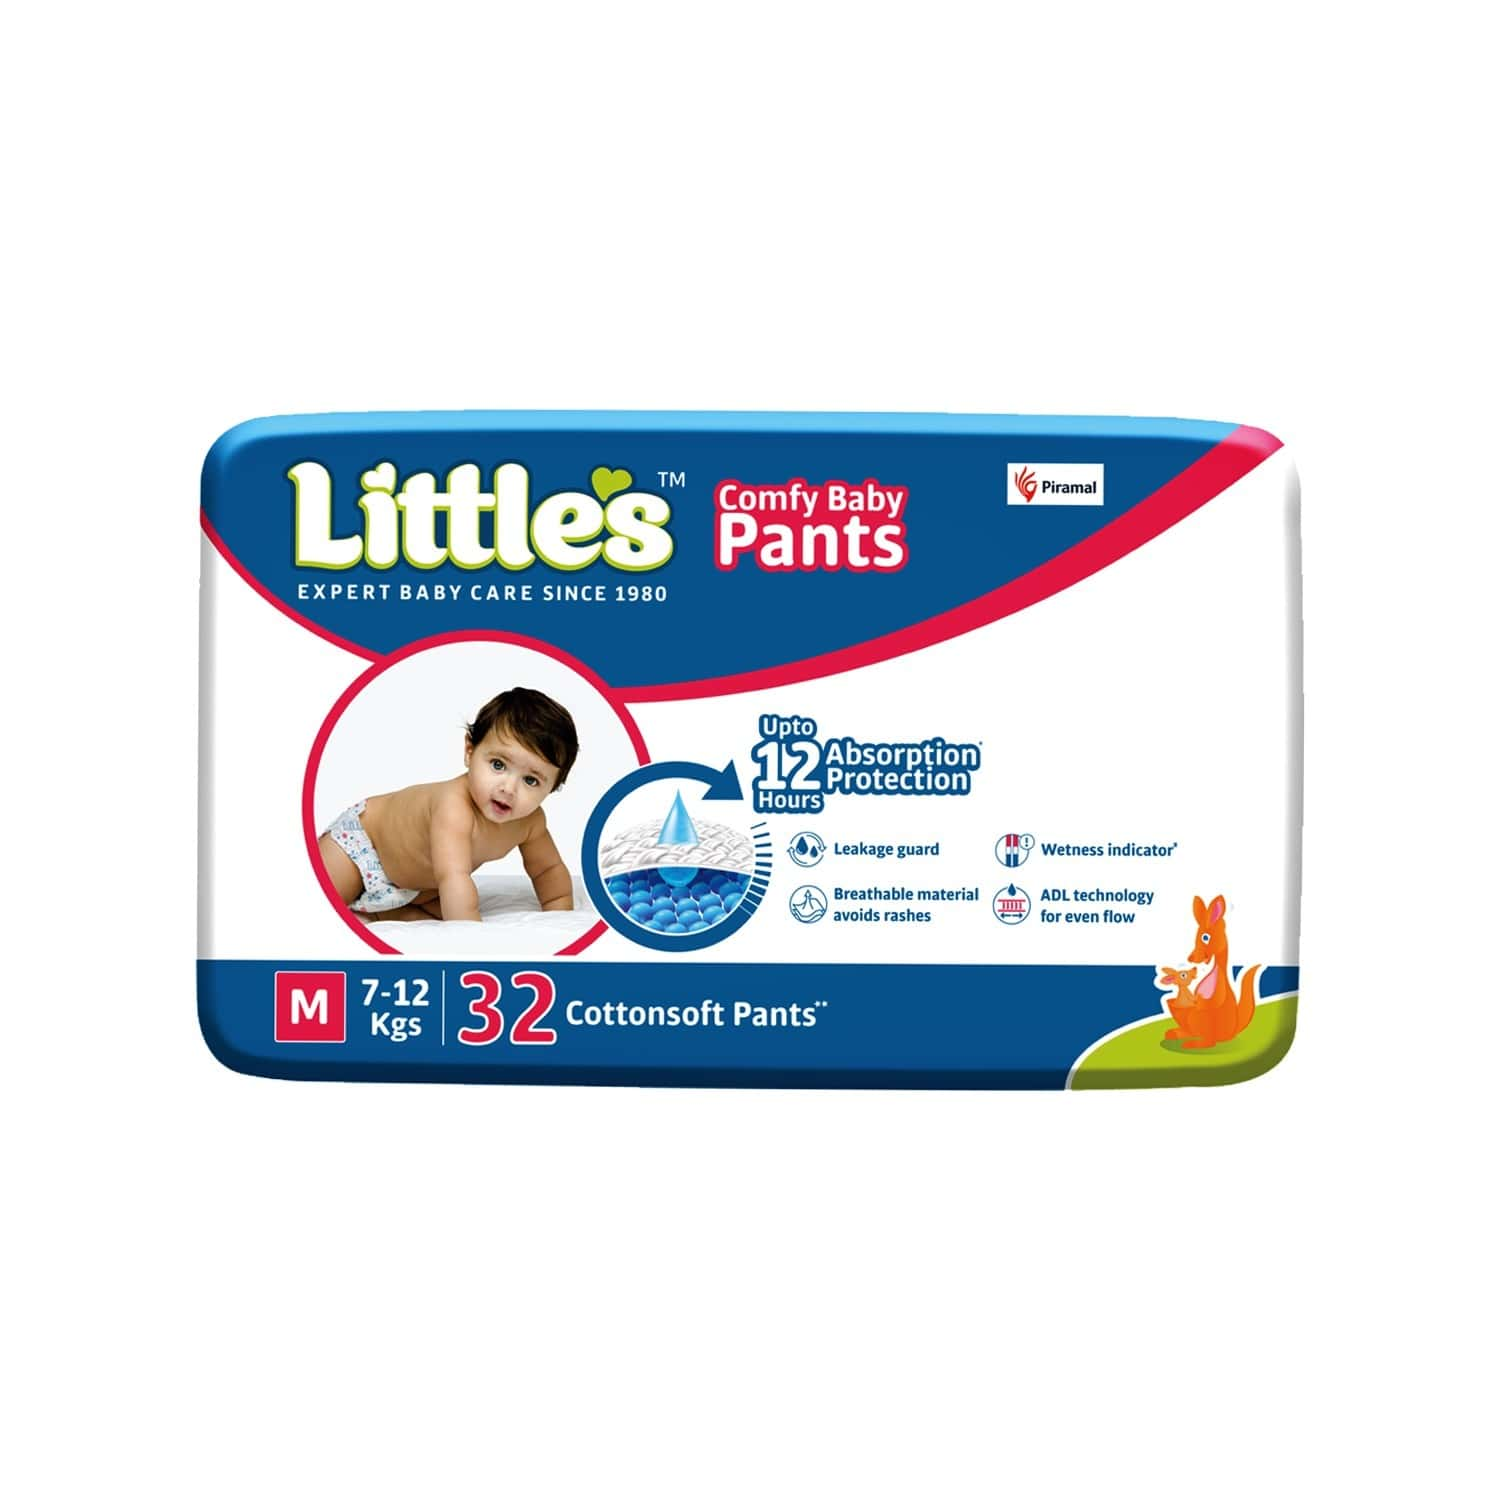 Little's Comfy Baby Pants Diapers With Wetness Indicator And 12 Hours Absorption - Medium 32 Pants